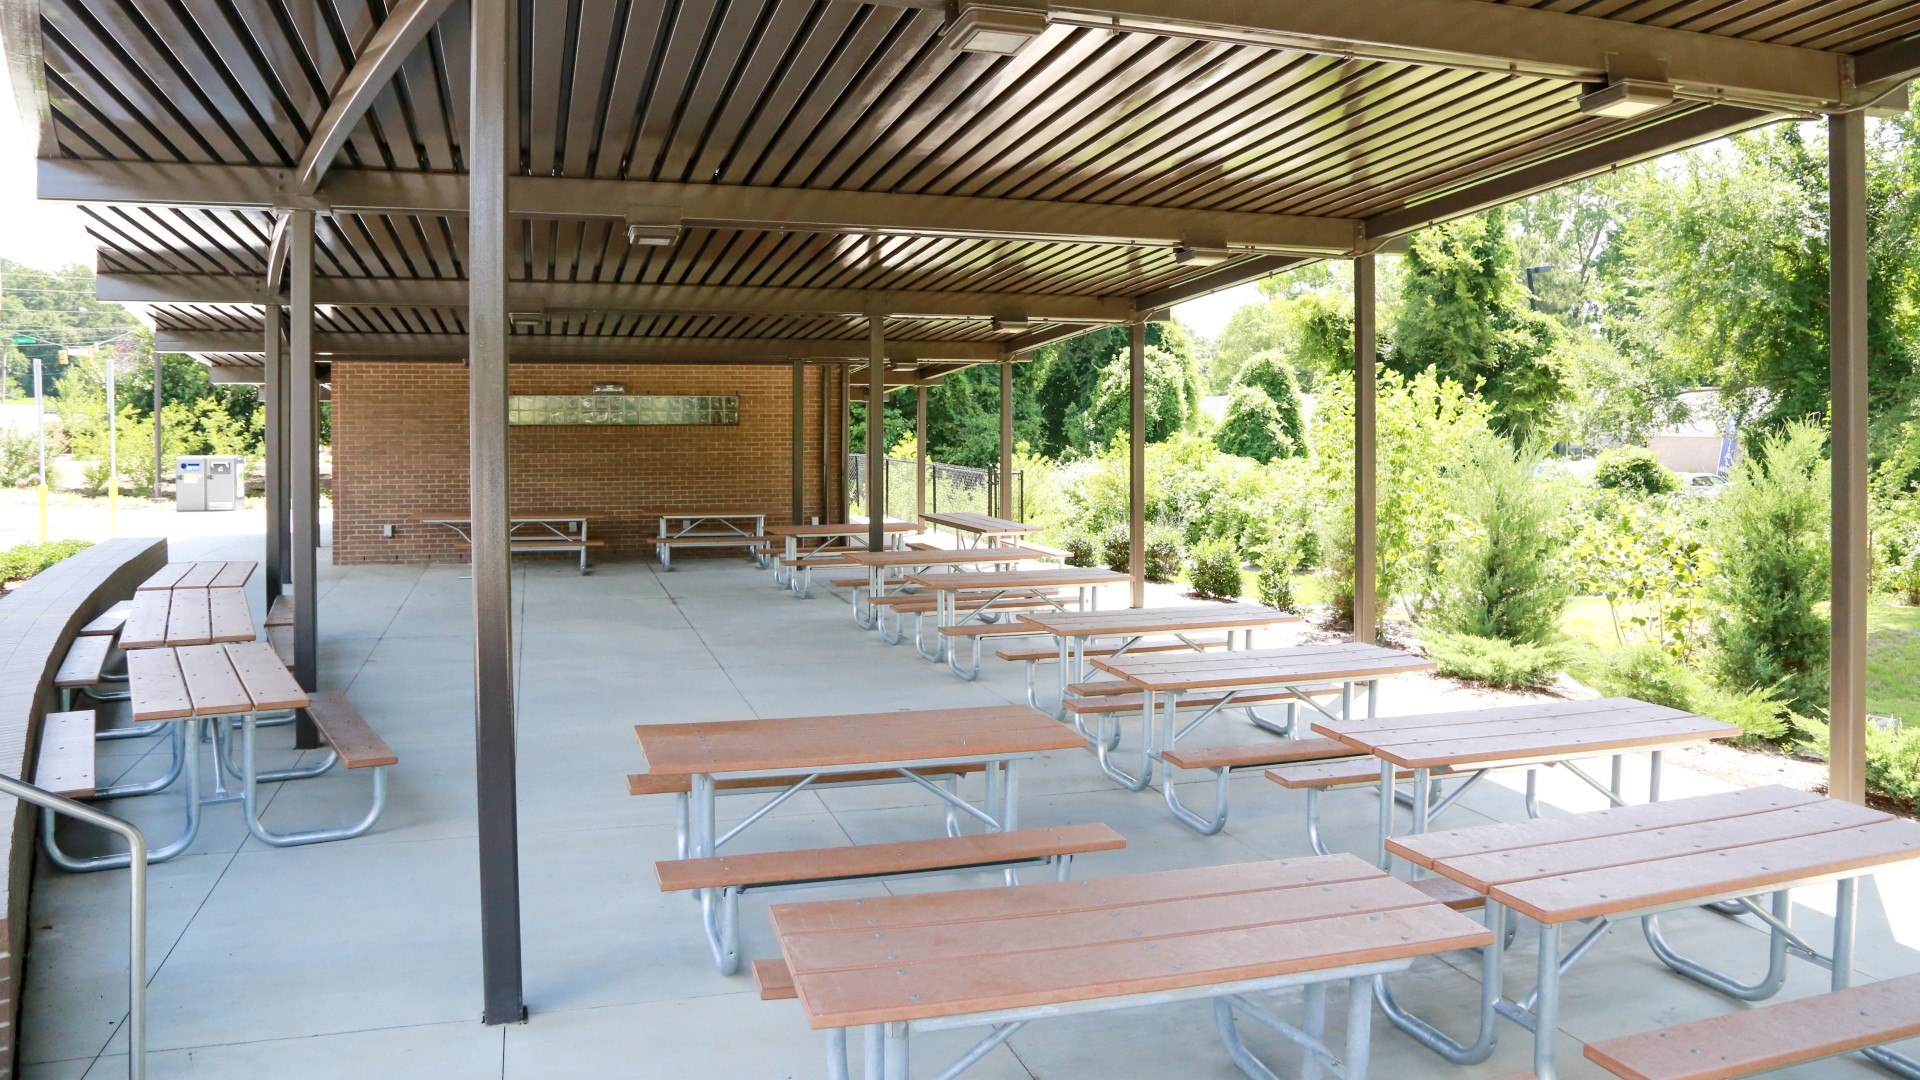 A large, open outdoor picnic shelter with over a dozen tables